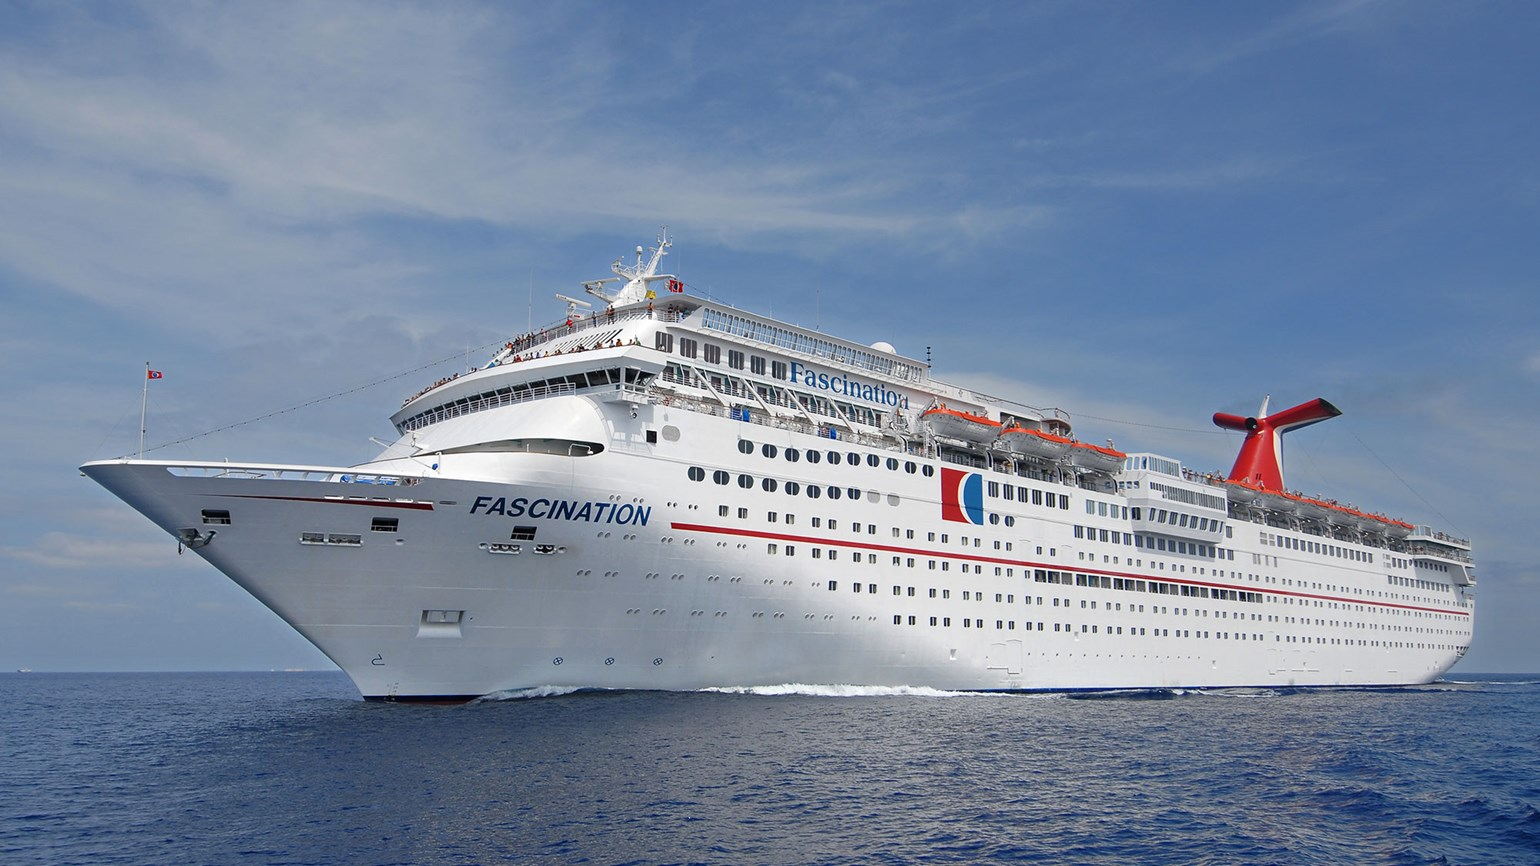 Carnival Fascination returns to San Juan